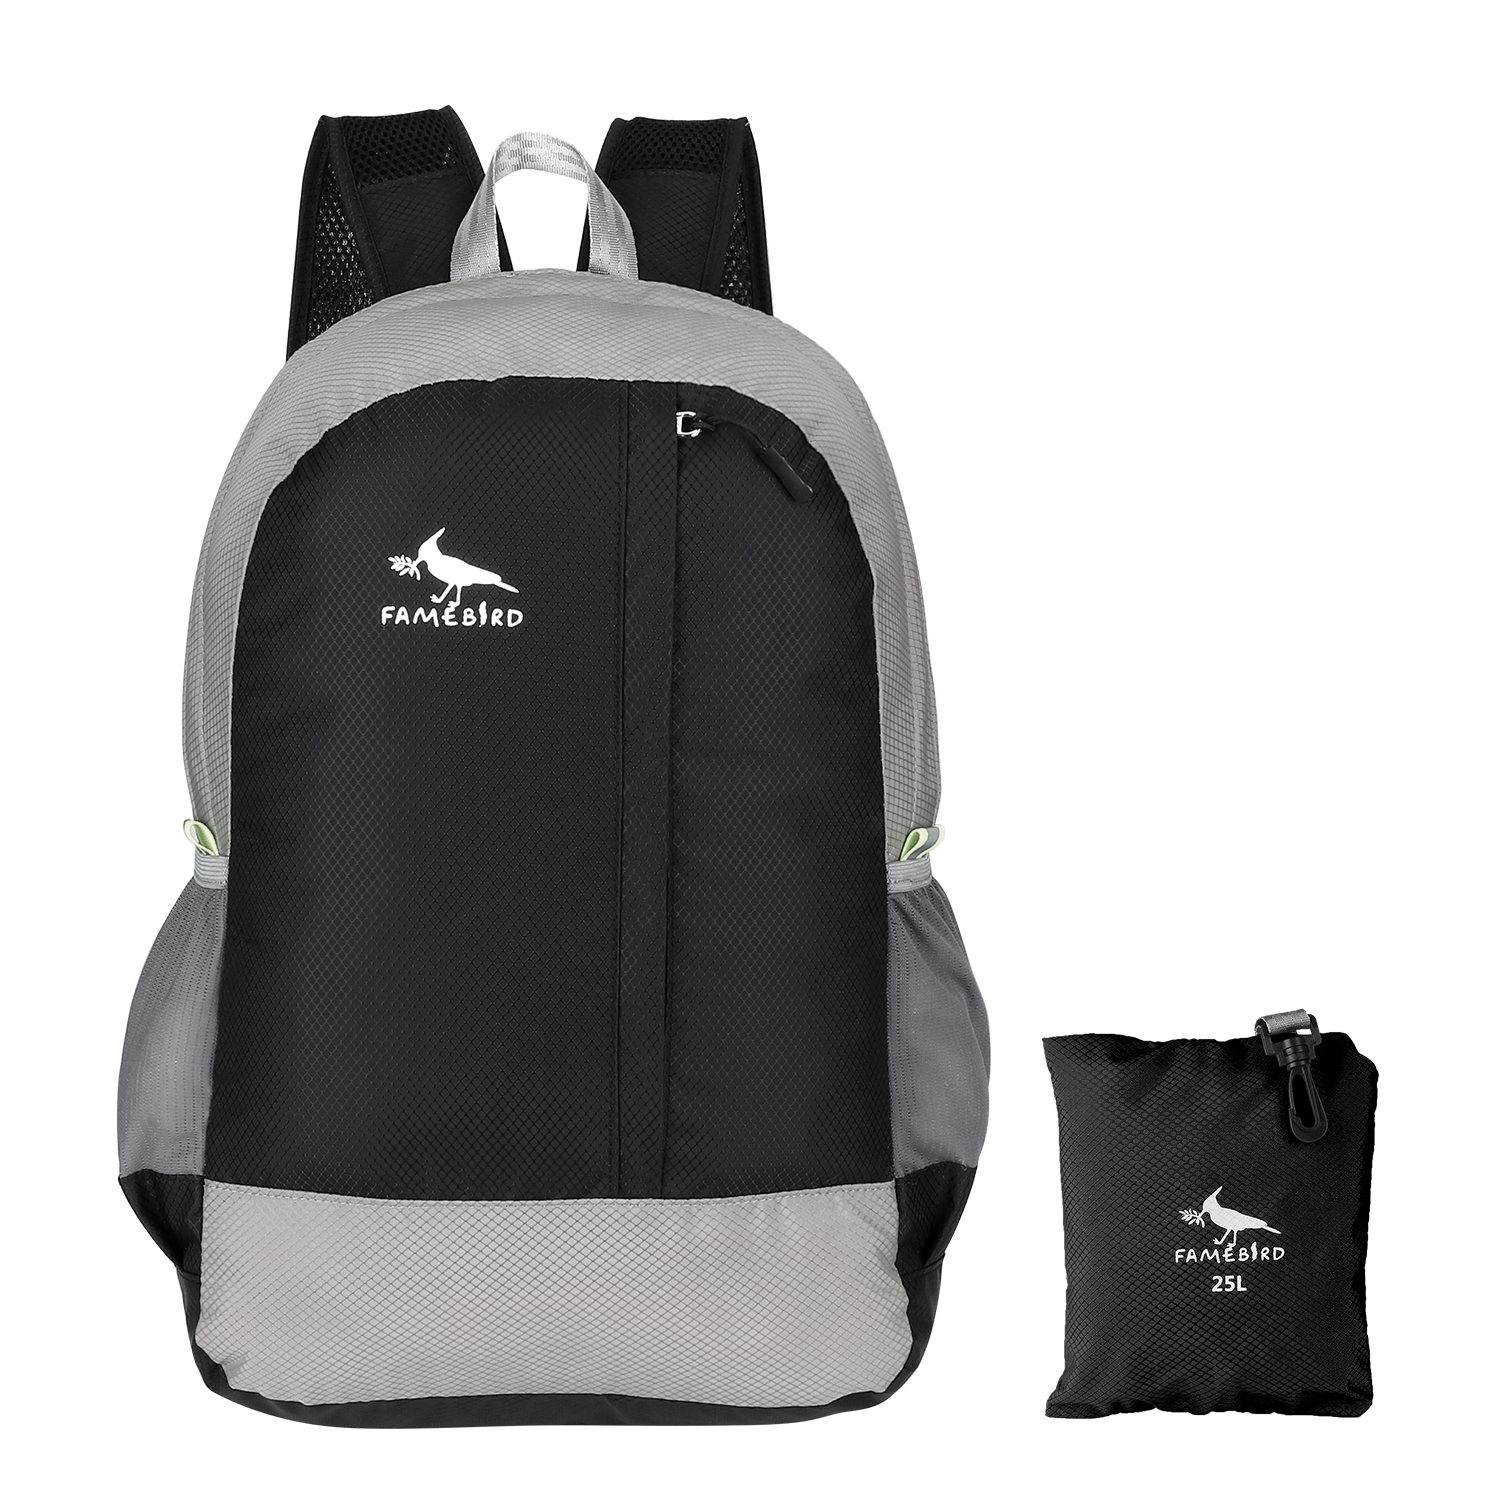 40% Off Famebird Lightweight Packable Hiking Backpack Free shipping